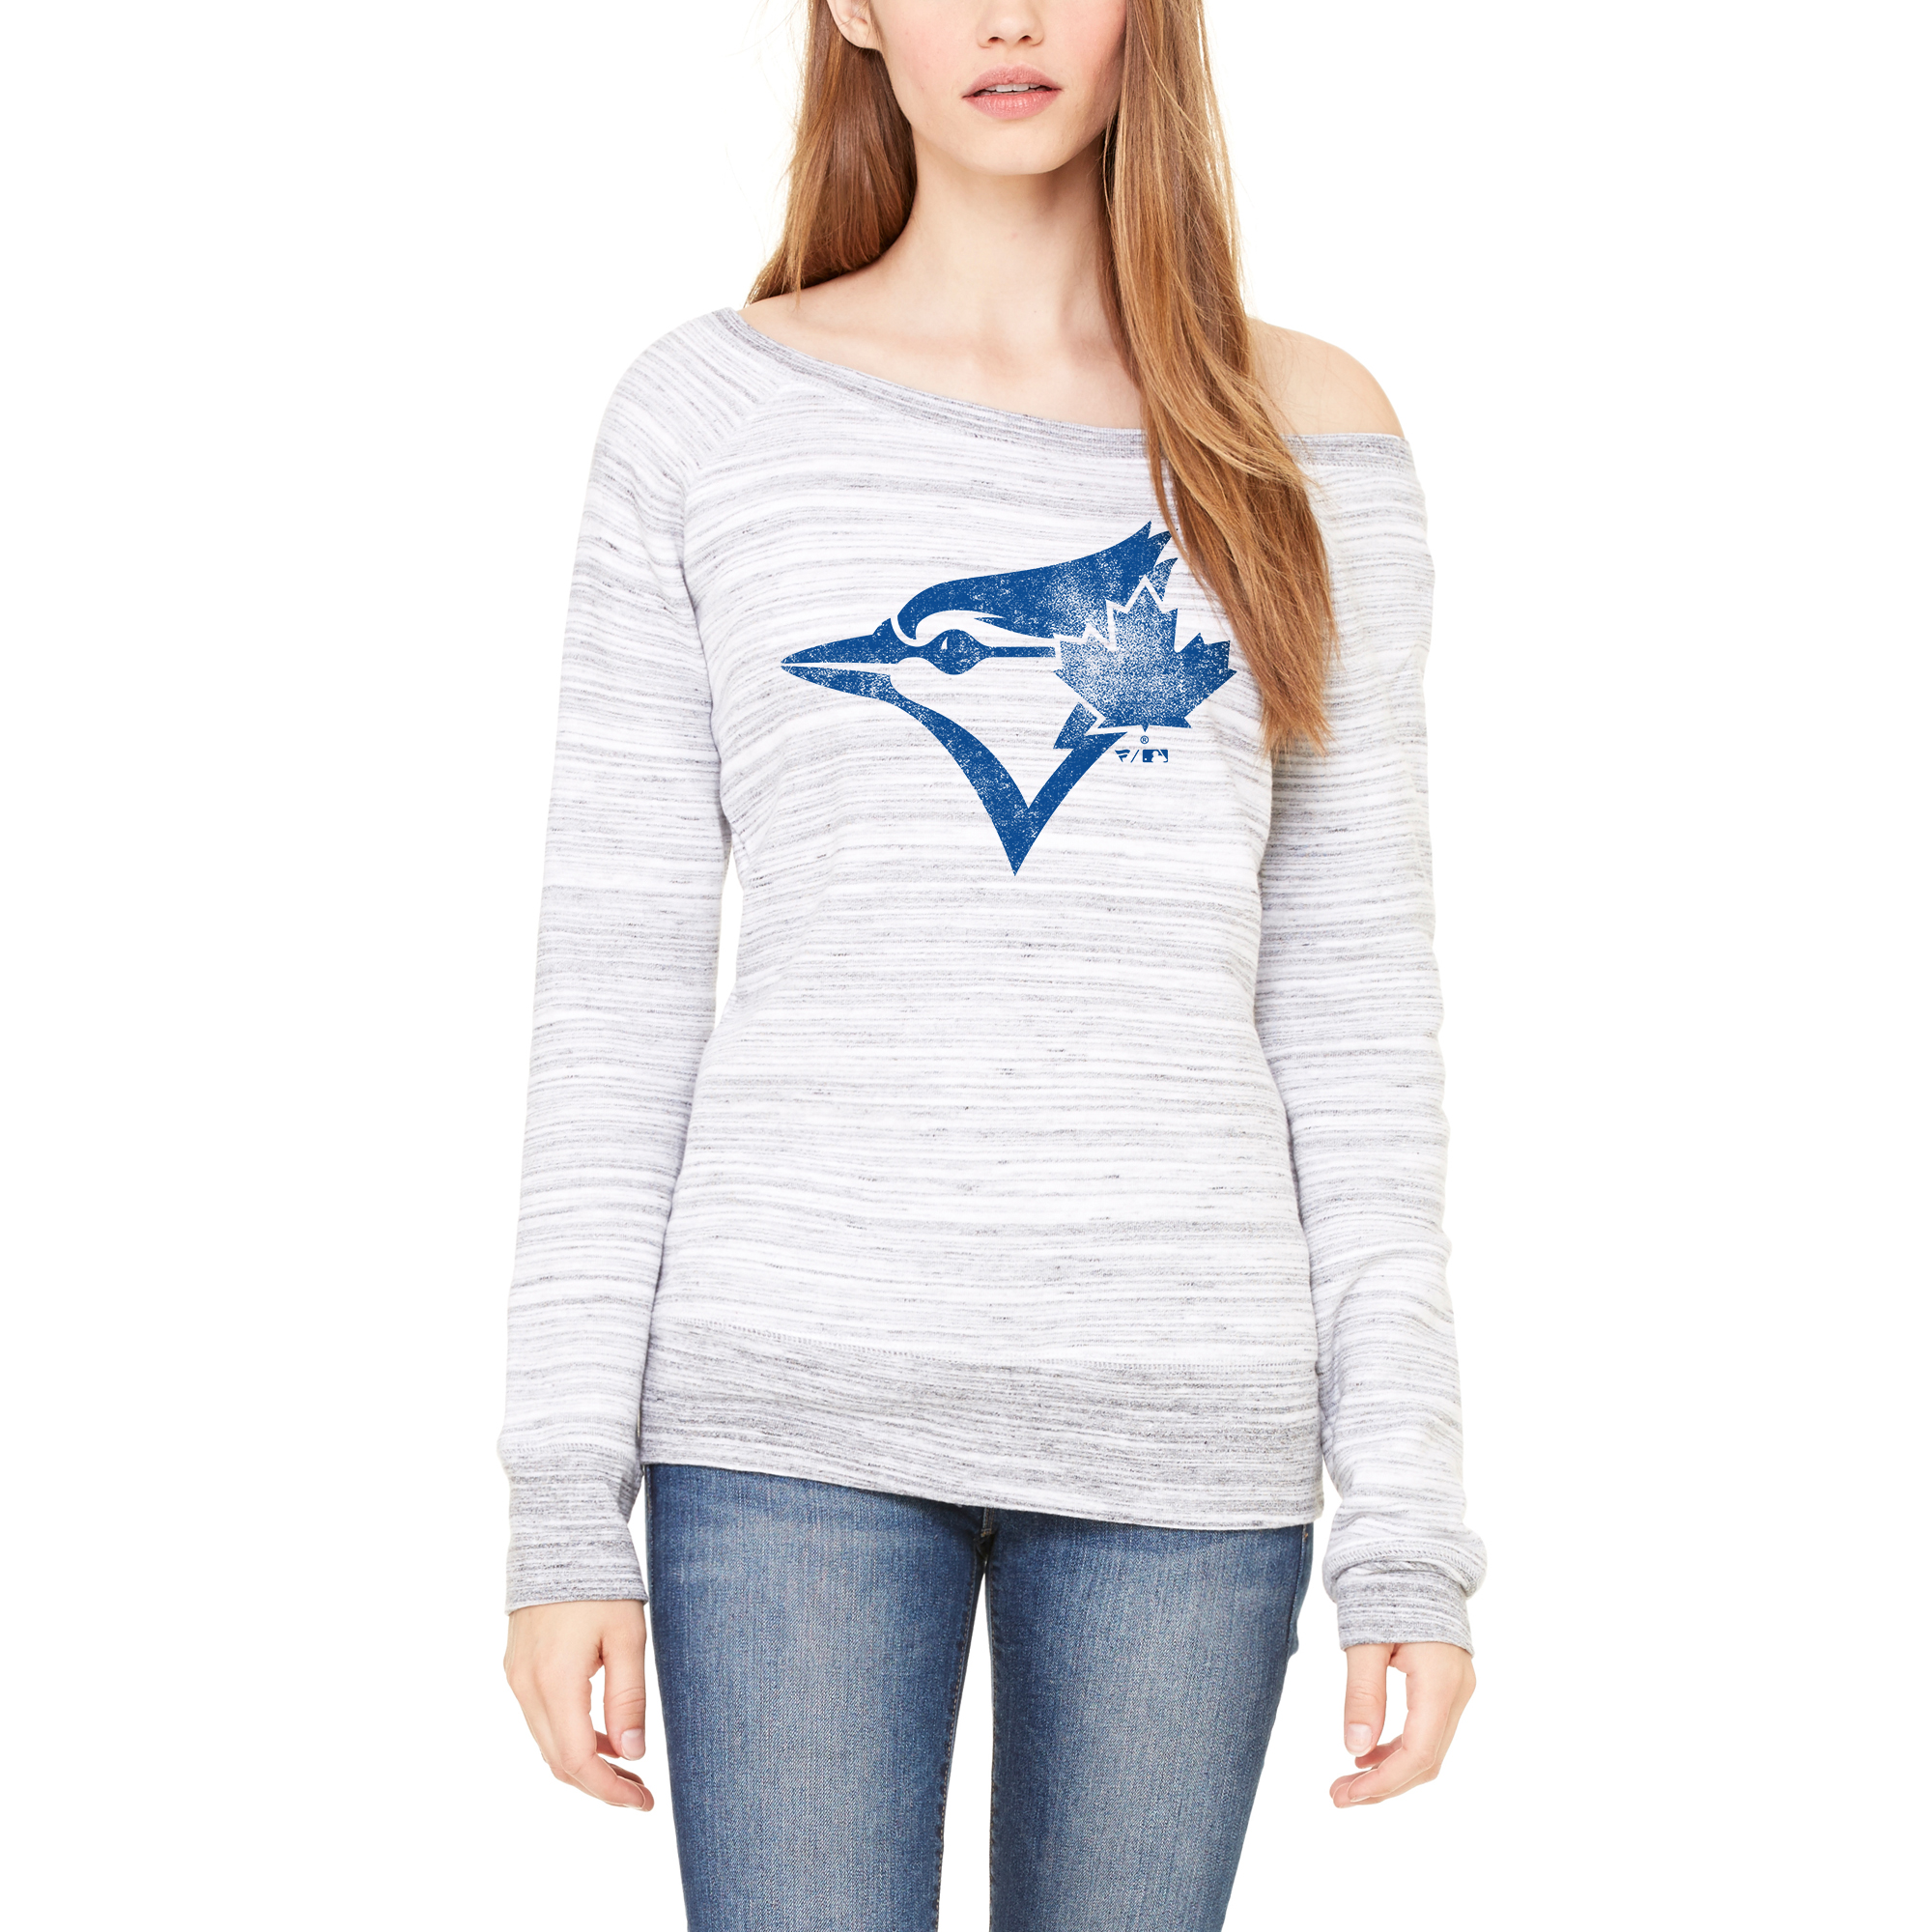 Toronto Blue Jays Let Loose by RNL Women's Game Day Wide Neck Sweatshirt - Light Gray Marble